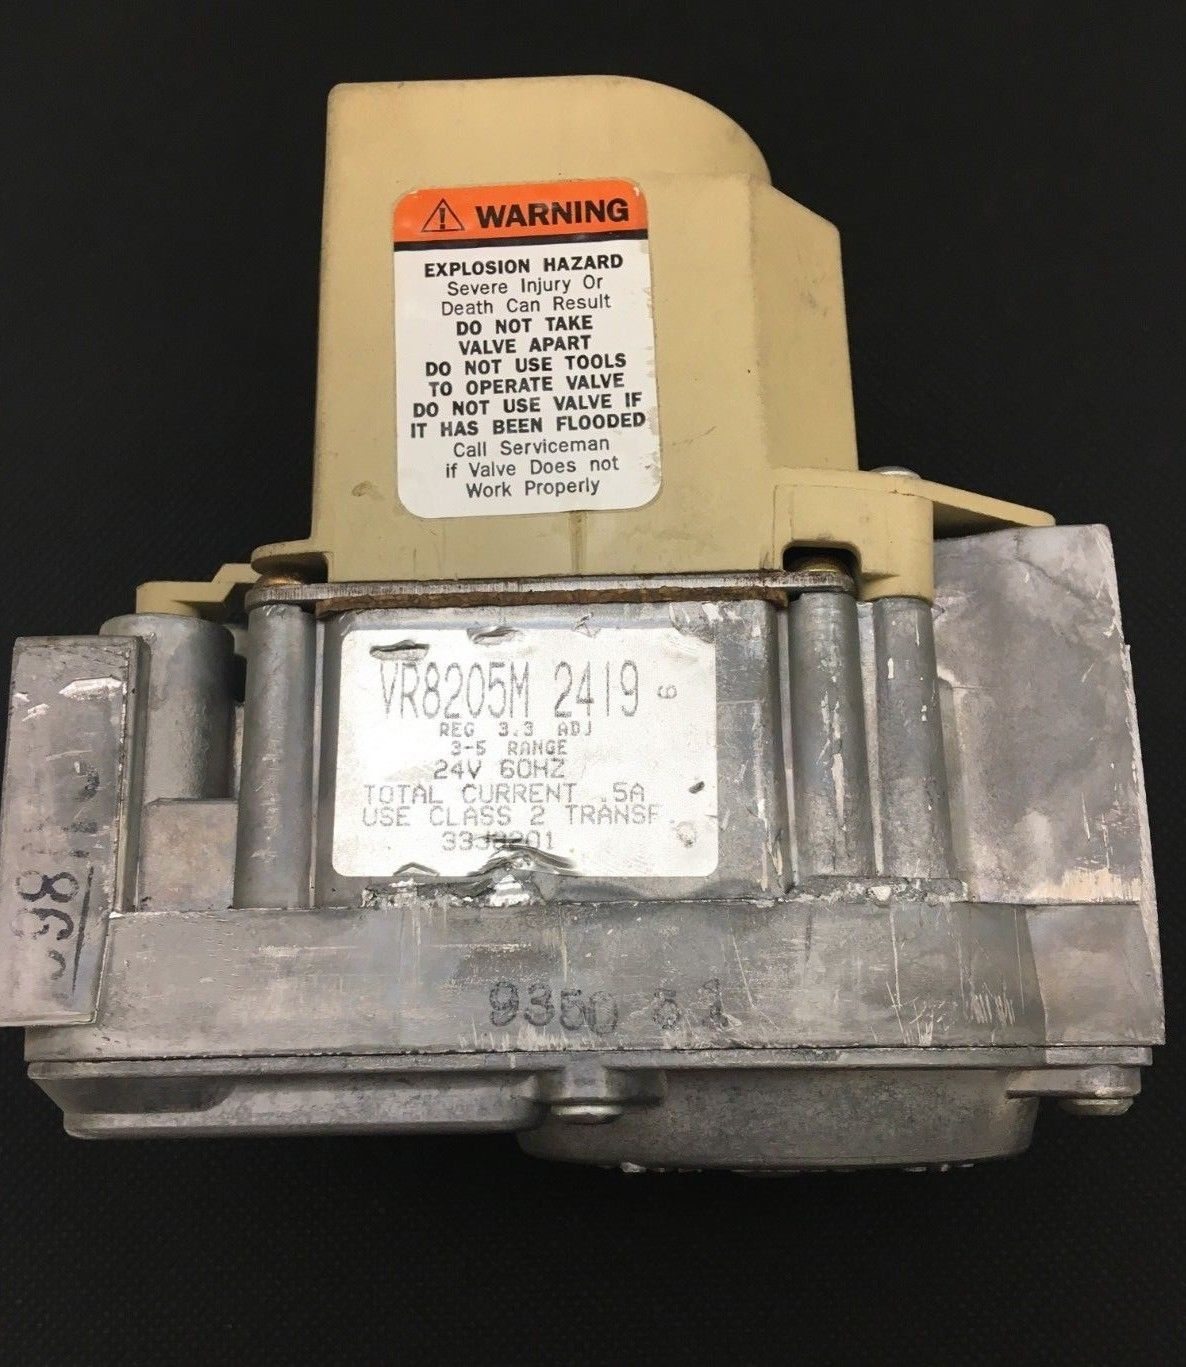 Primary image for Honeywell Furnace Gas Valve VR8205M 2419  used  + FREE Expedited Ship. & Returns